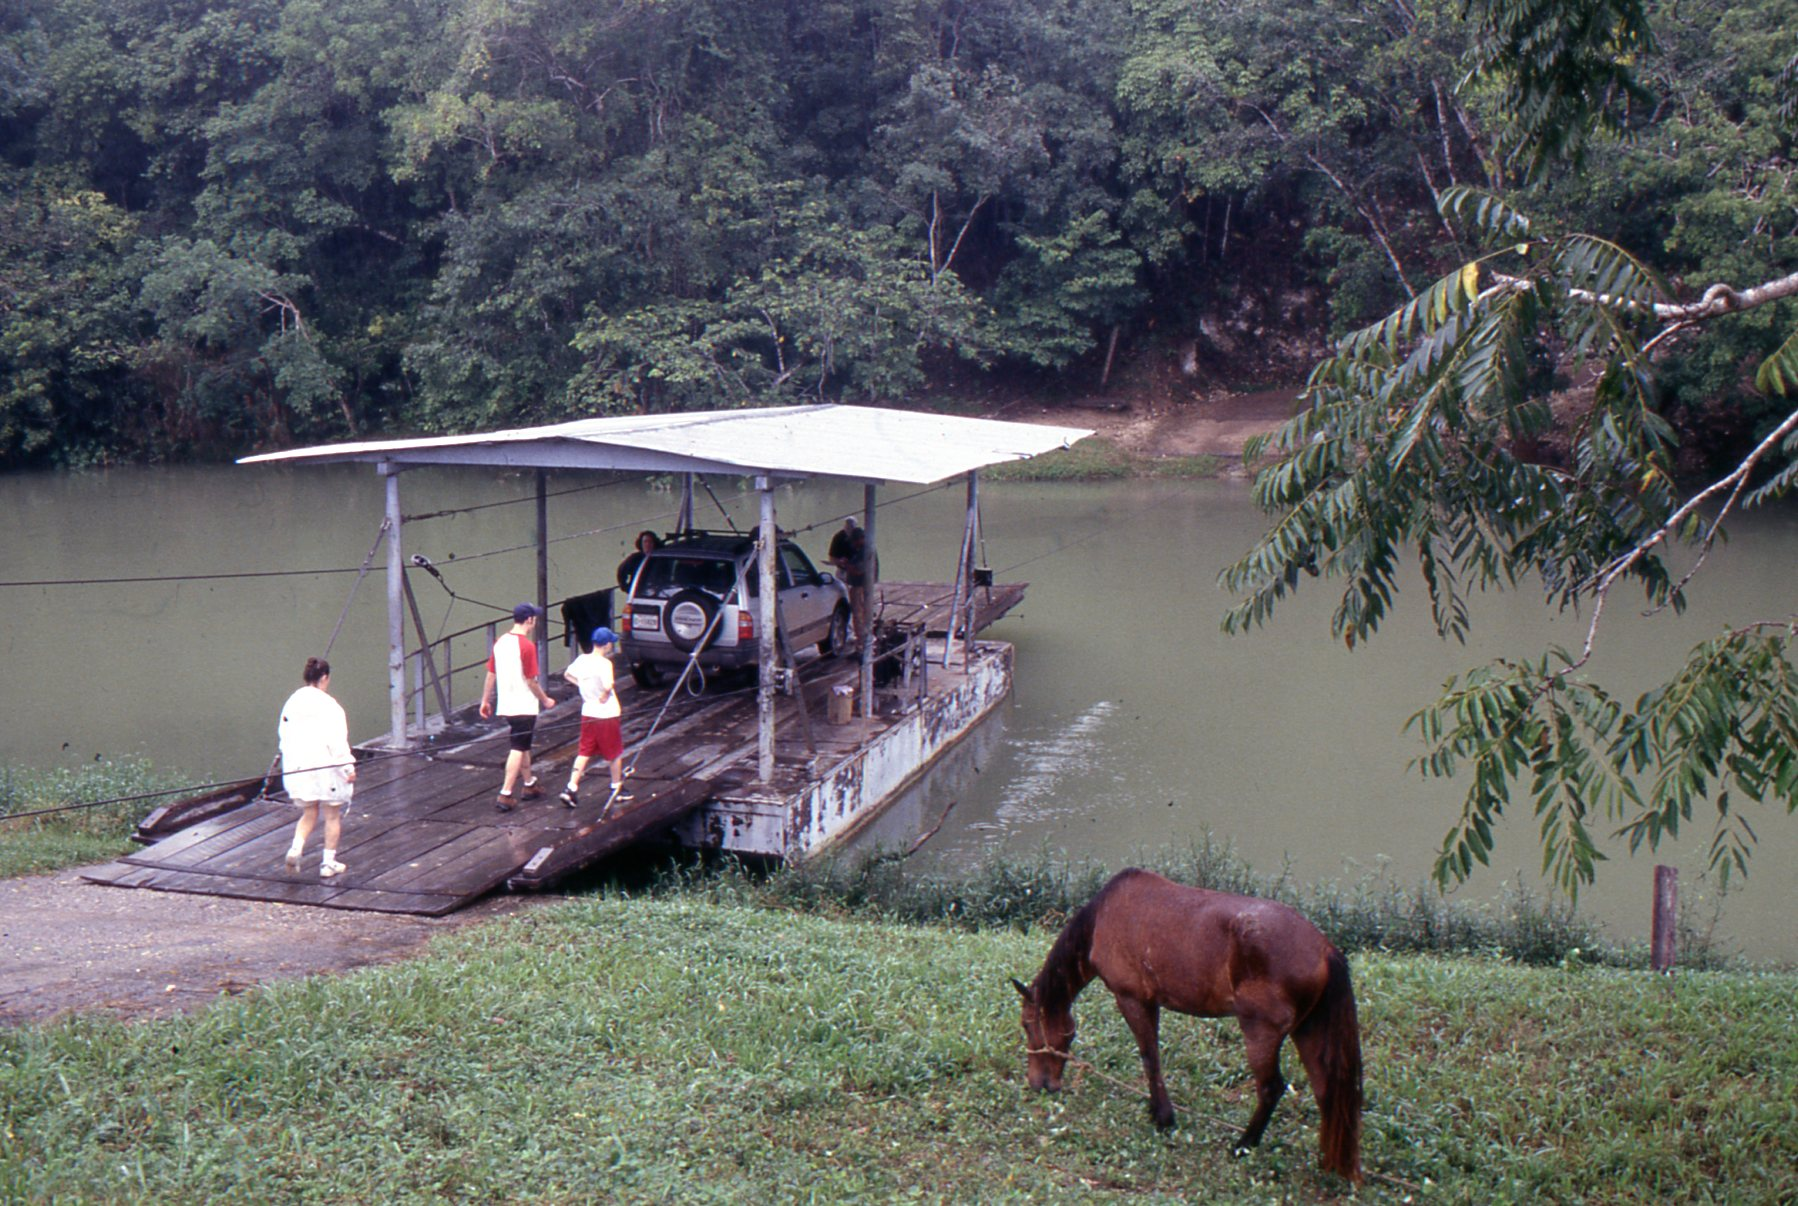 A hand-cranked ferry across the Mopan River leads to the ruins of Xunantunich.